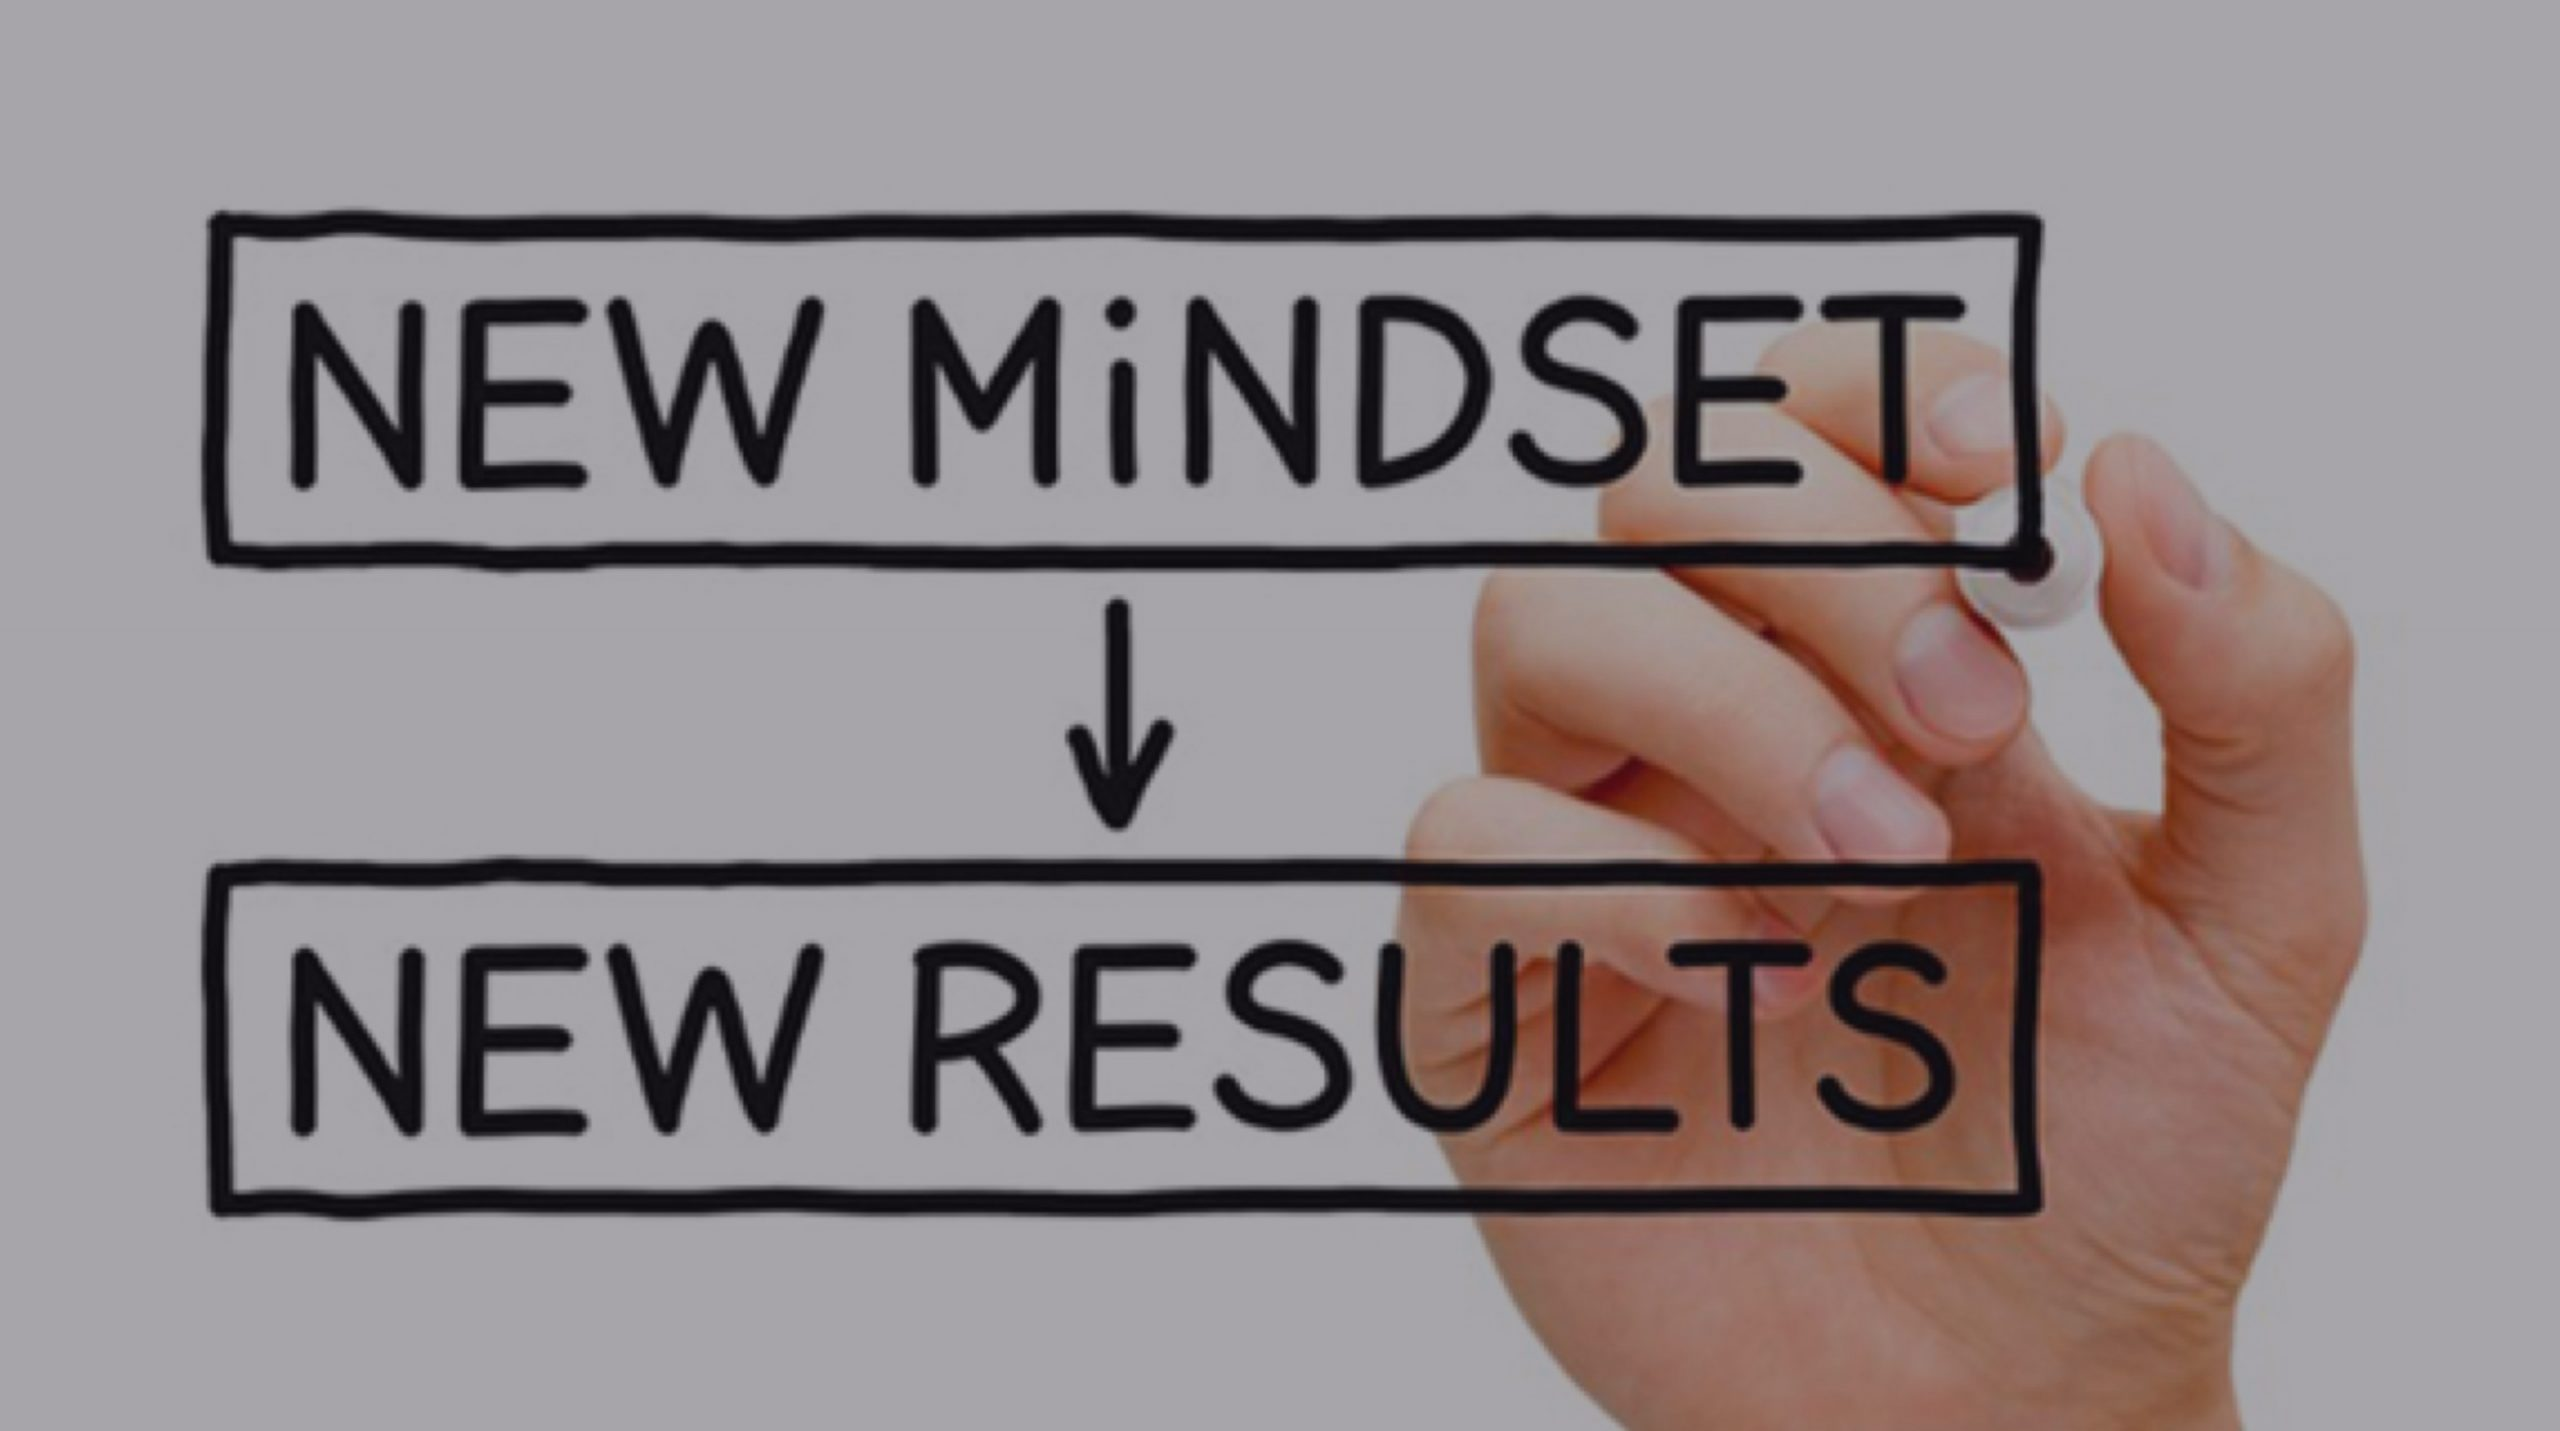 'Agile Is A Mindset Change' what does that mean to me?